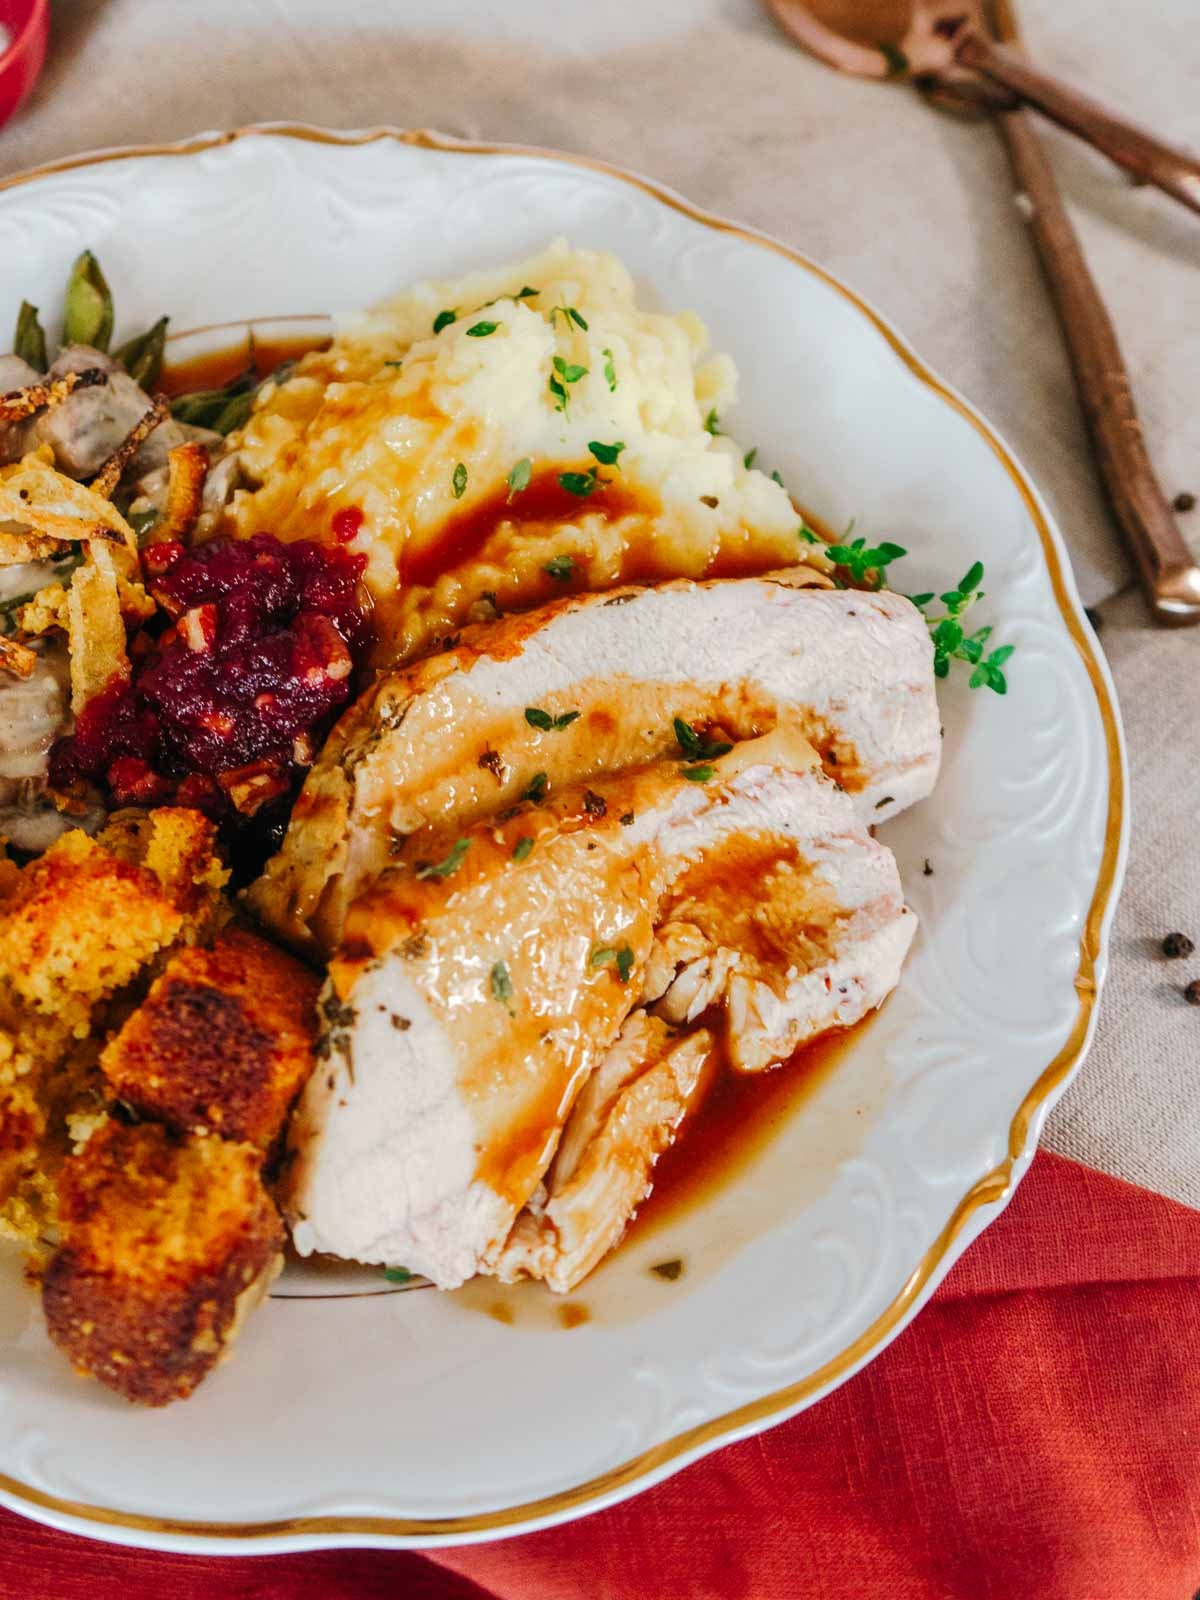 plate full of thanksgiving staples including turkey breast with gravy